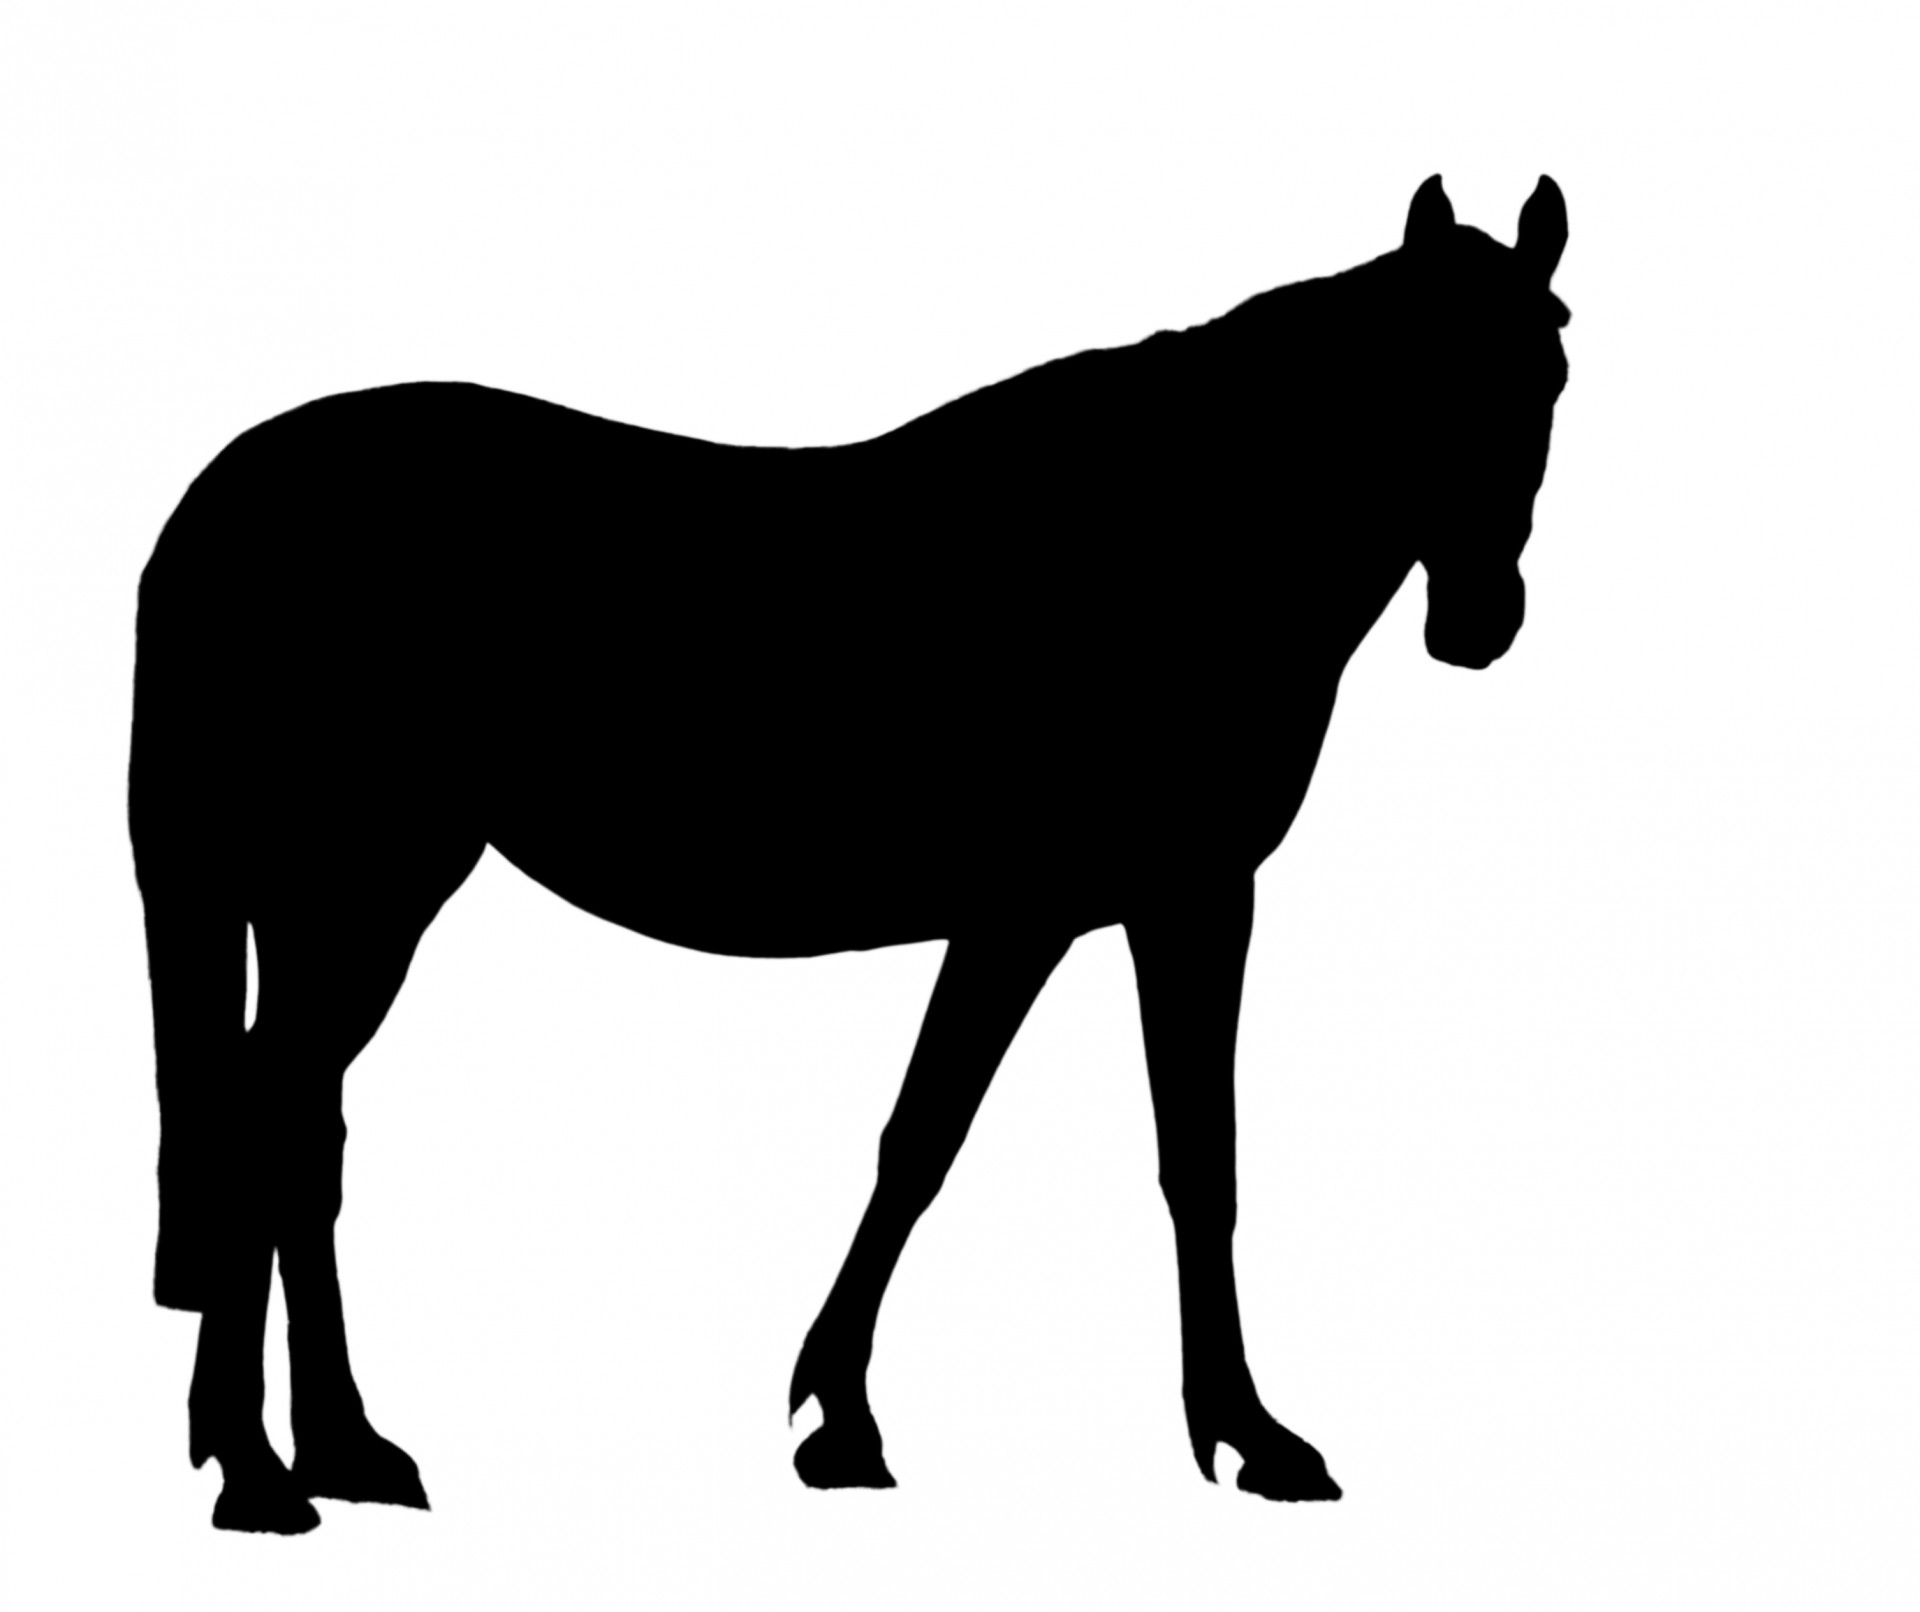 1920x1612 Black Horse Silhouette Clipart Free Stock Photo